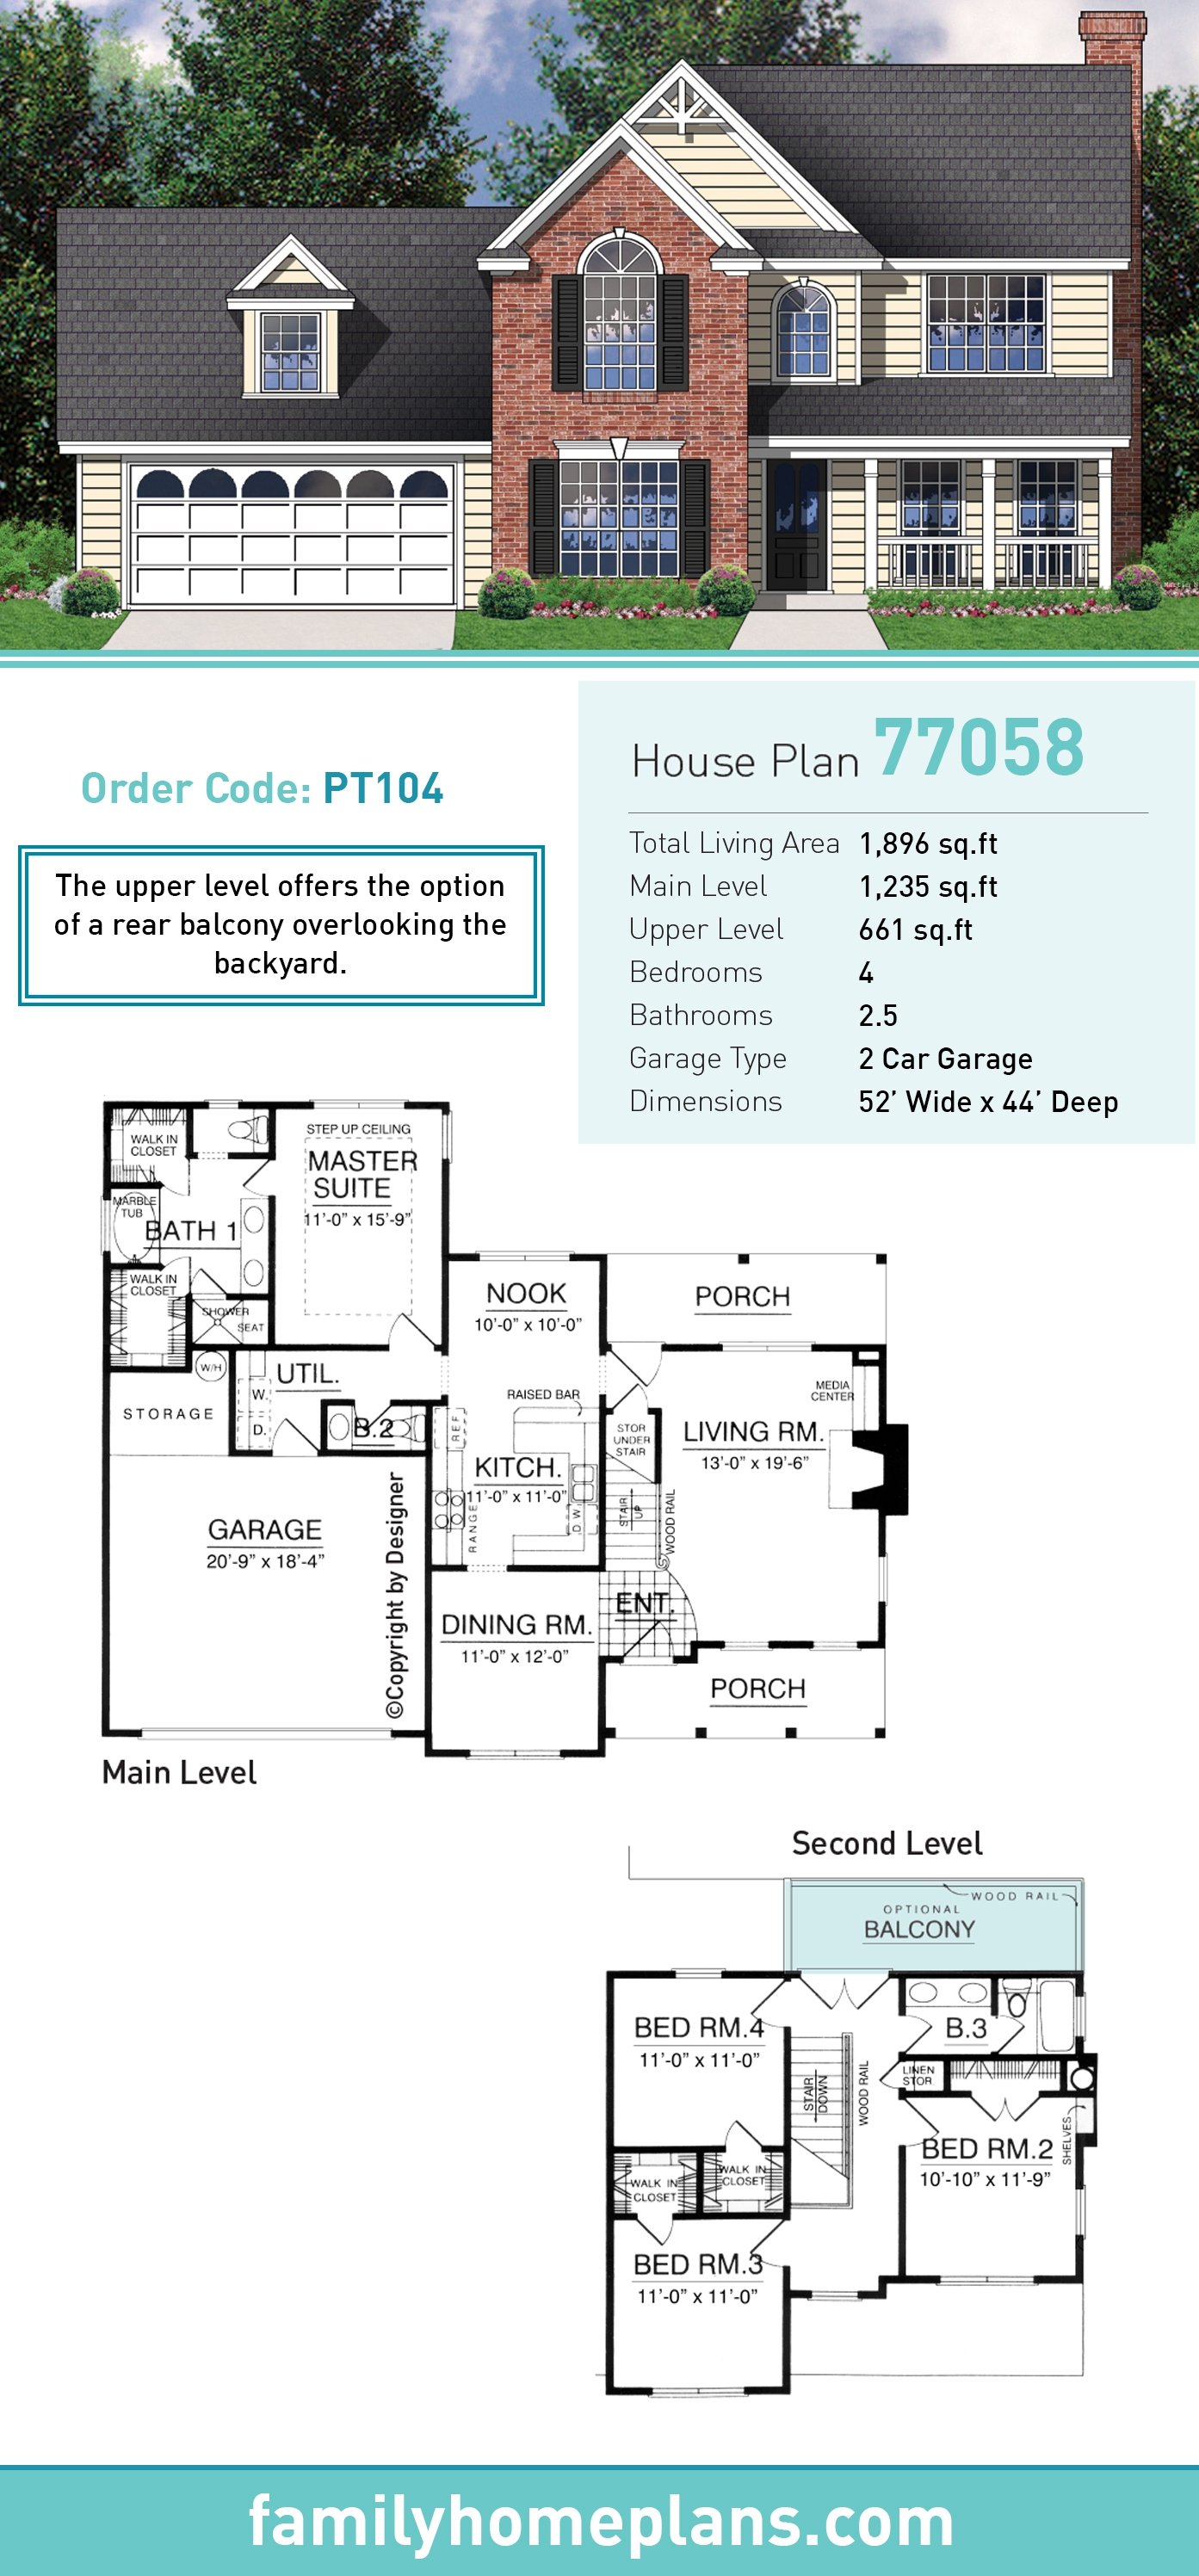 Farmhouse, Traditional House Plan 77058 with 4 Beds, 2.5 Baths, 2 Car Garage